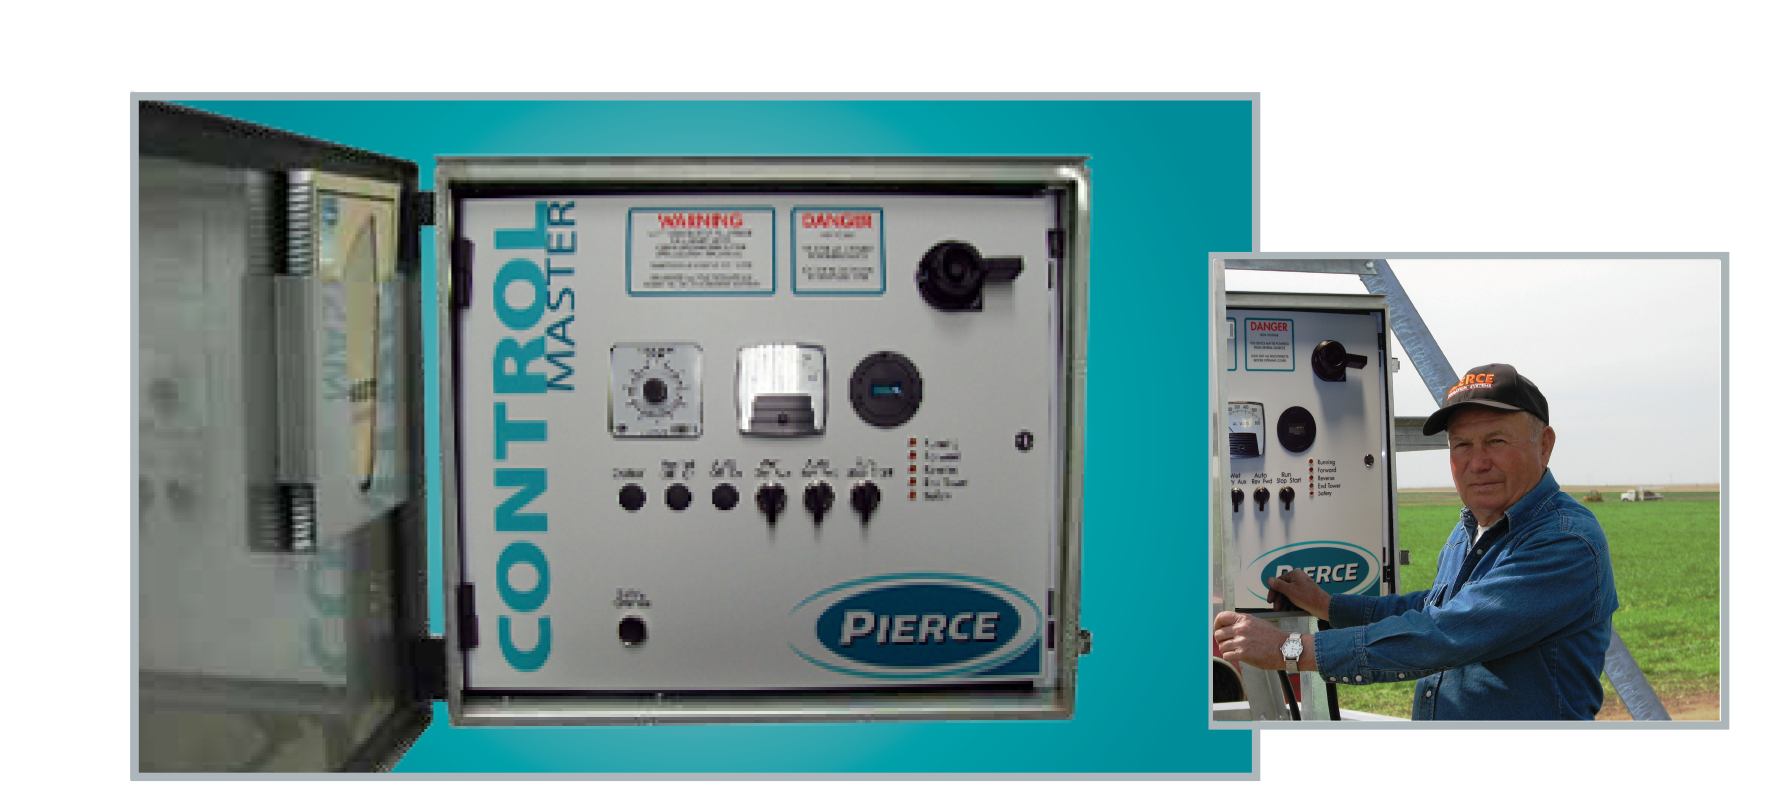 Pierce Corporation Irrigation Systems Control Panel